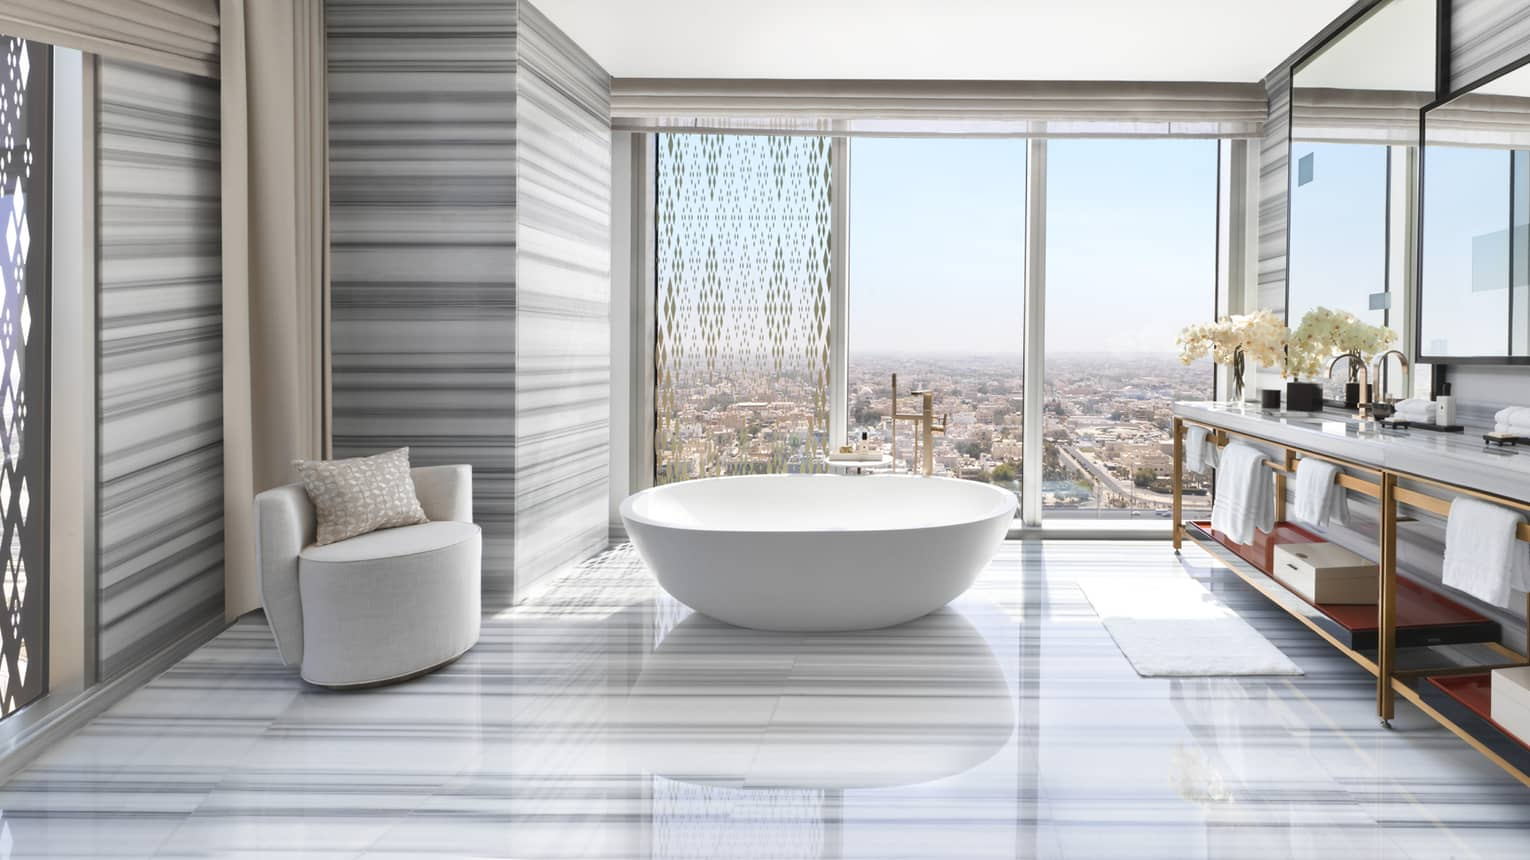 Large Royal Suite bathroom with modern striped marble floors, walls, freestanding tub, armchair